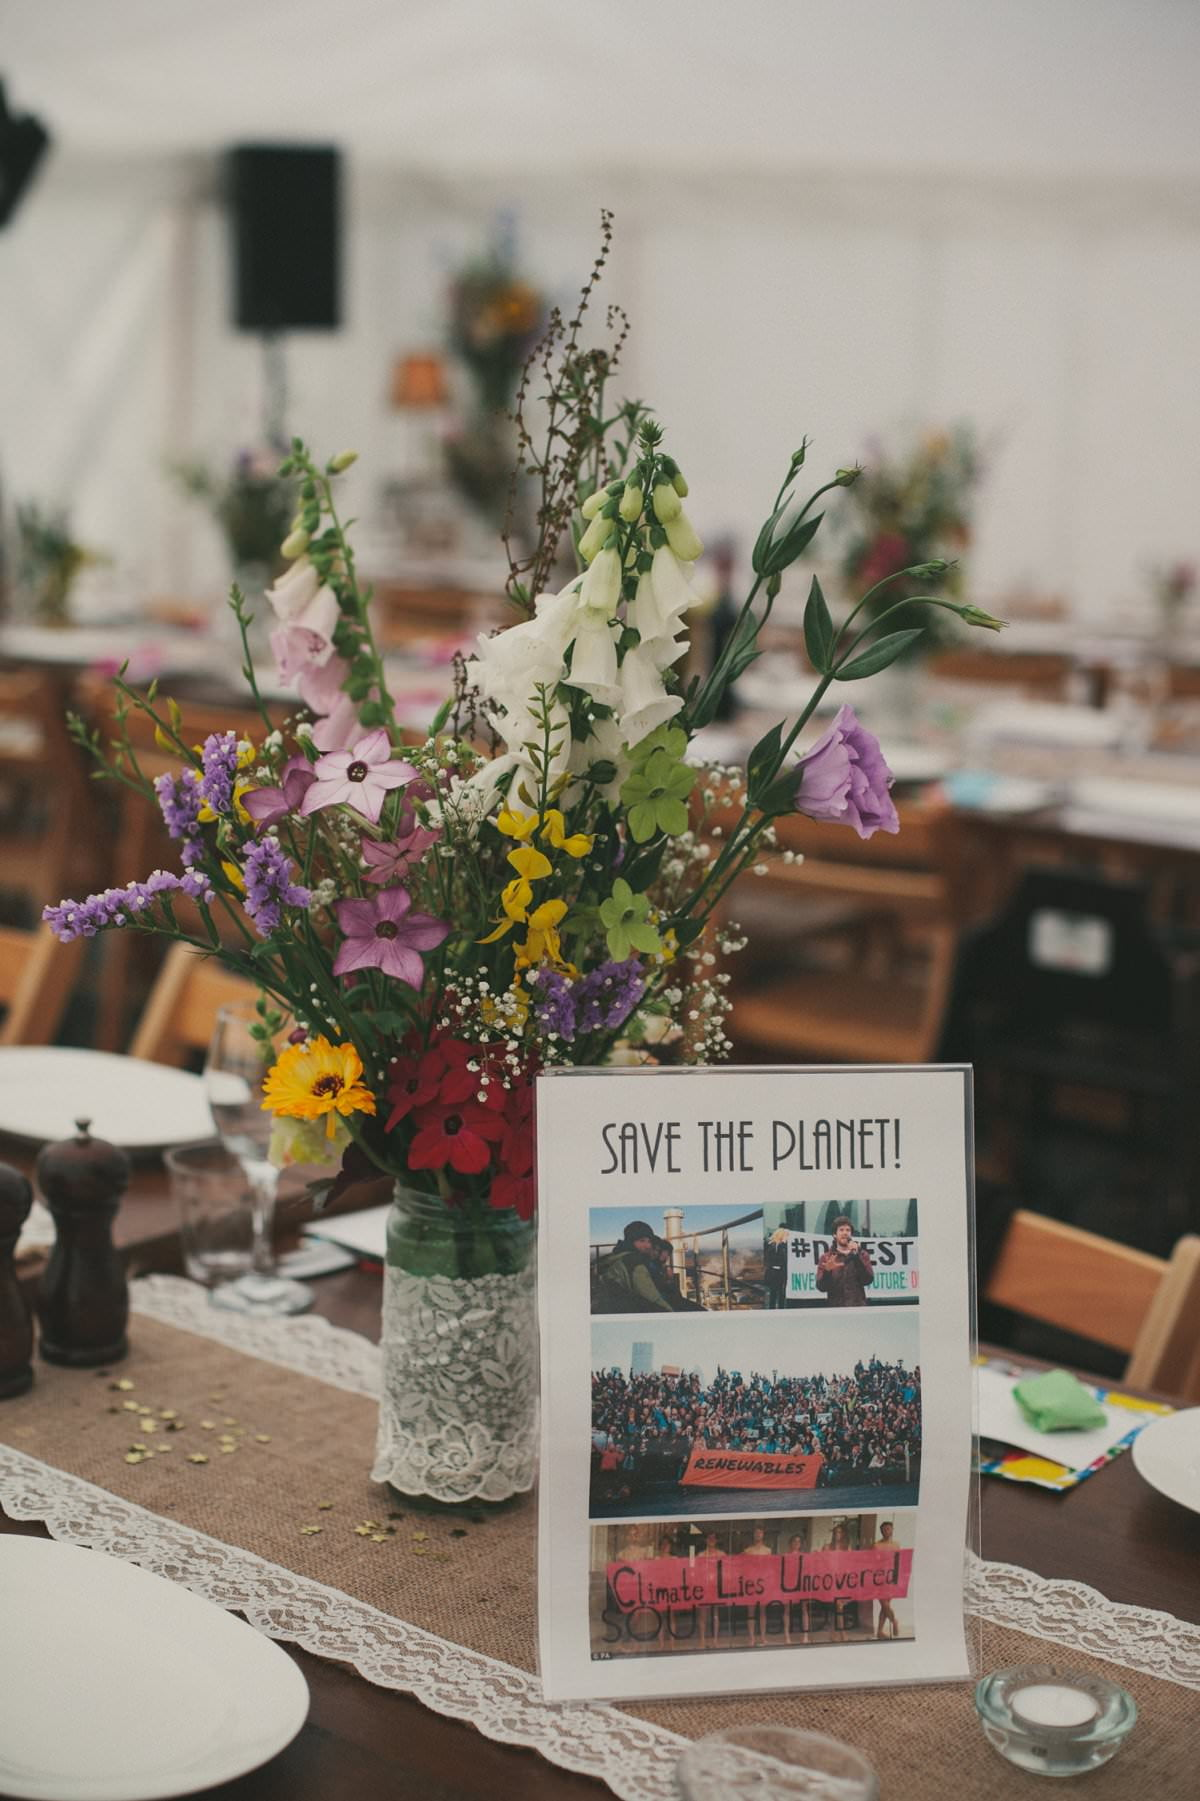 Wildflowers and Save The Planet activist table name at wedding in the Perch Oxford